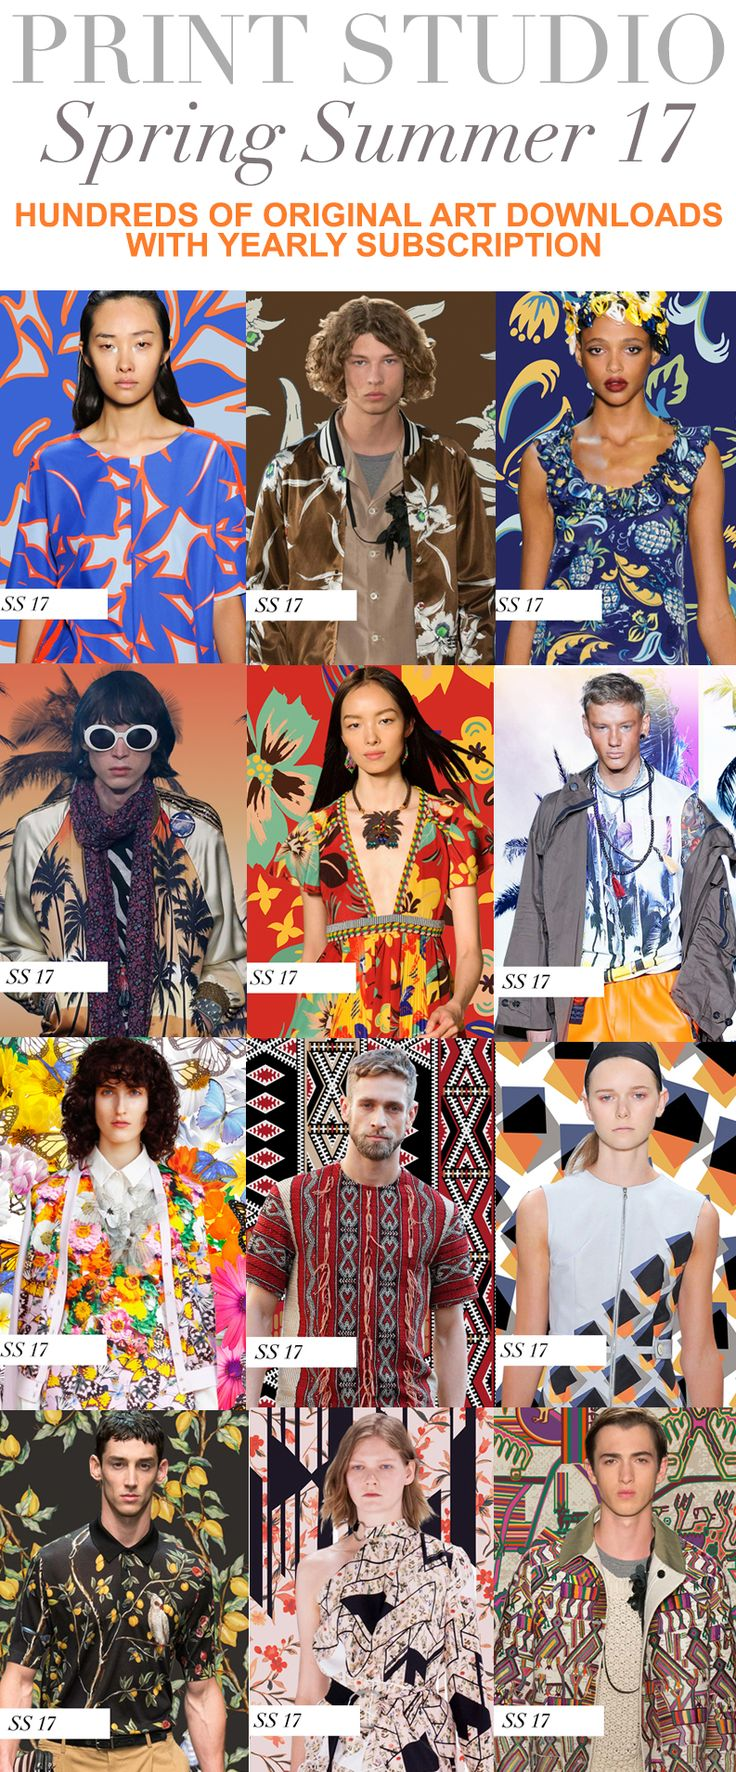 TREND COUNCIL UPDATES spring summer 2017